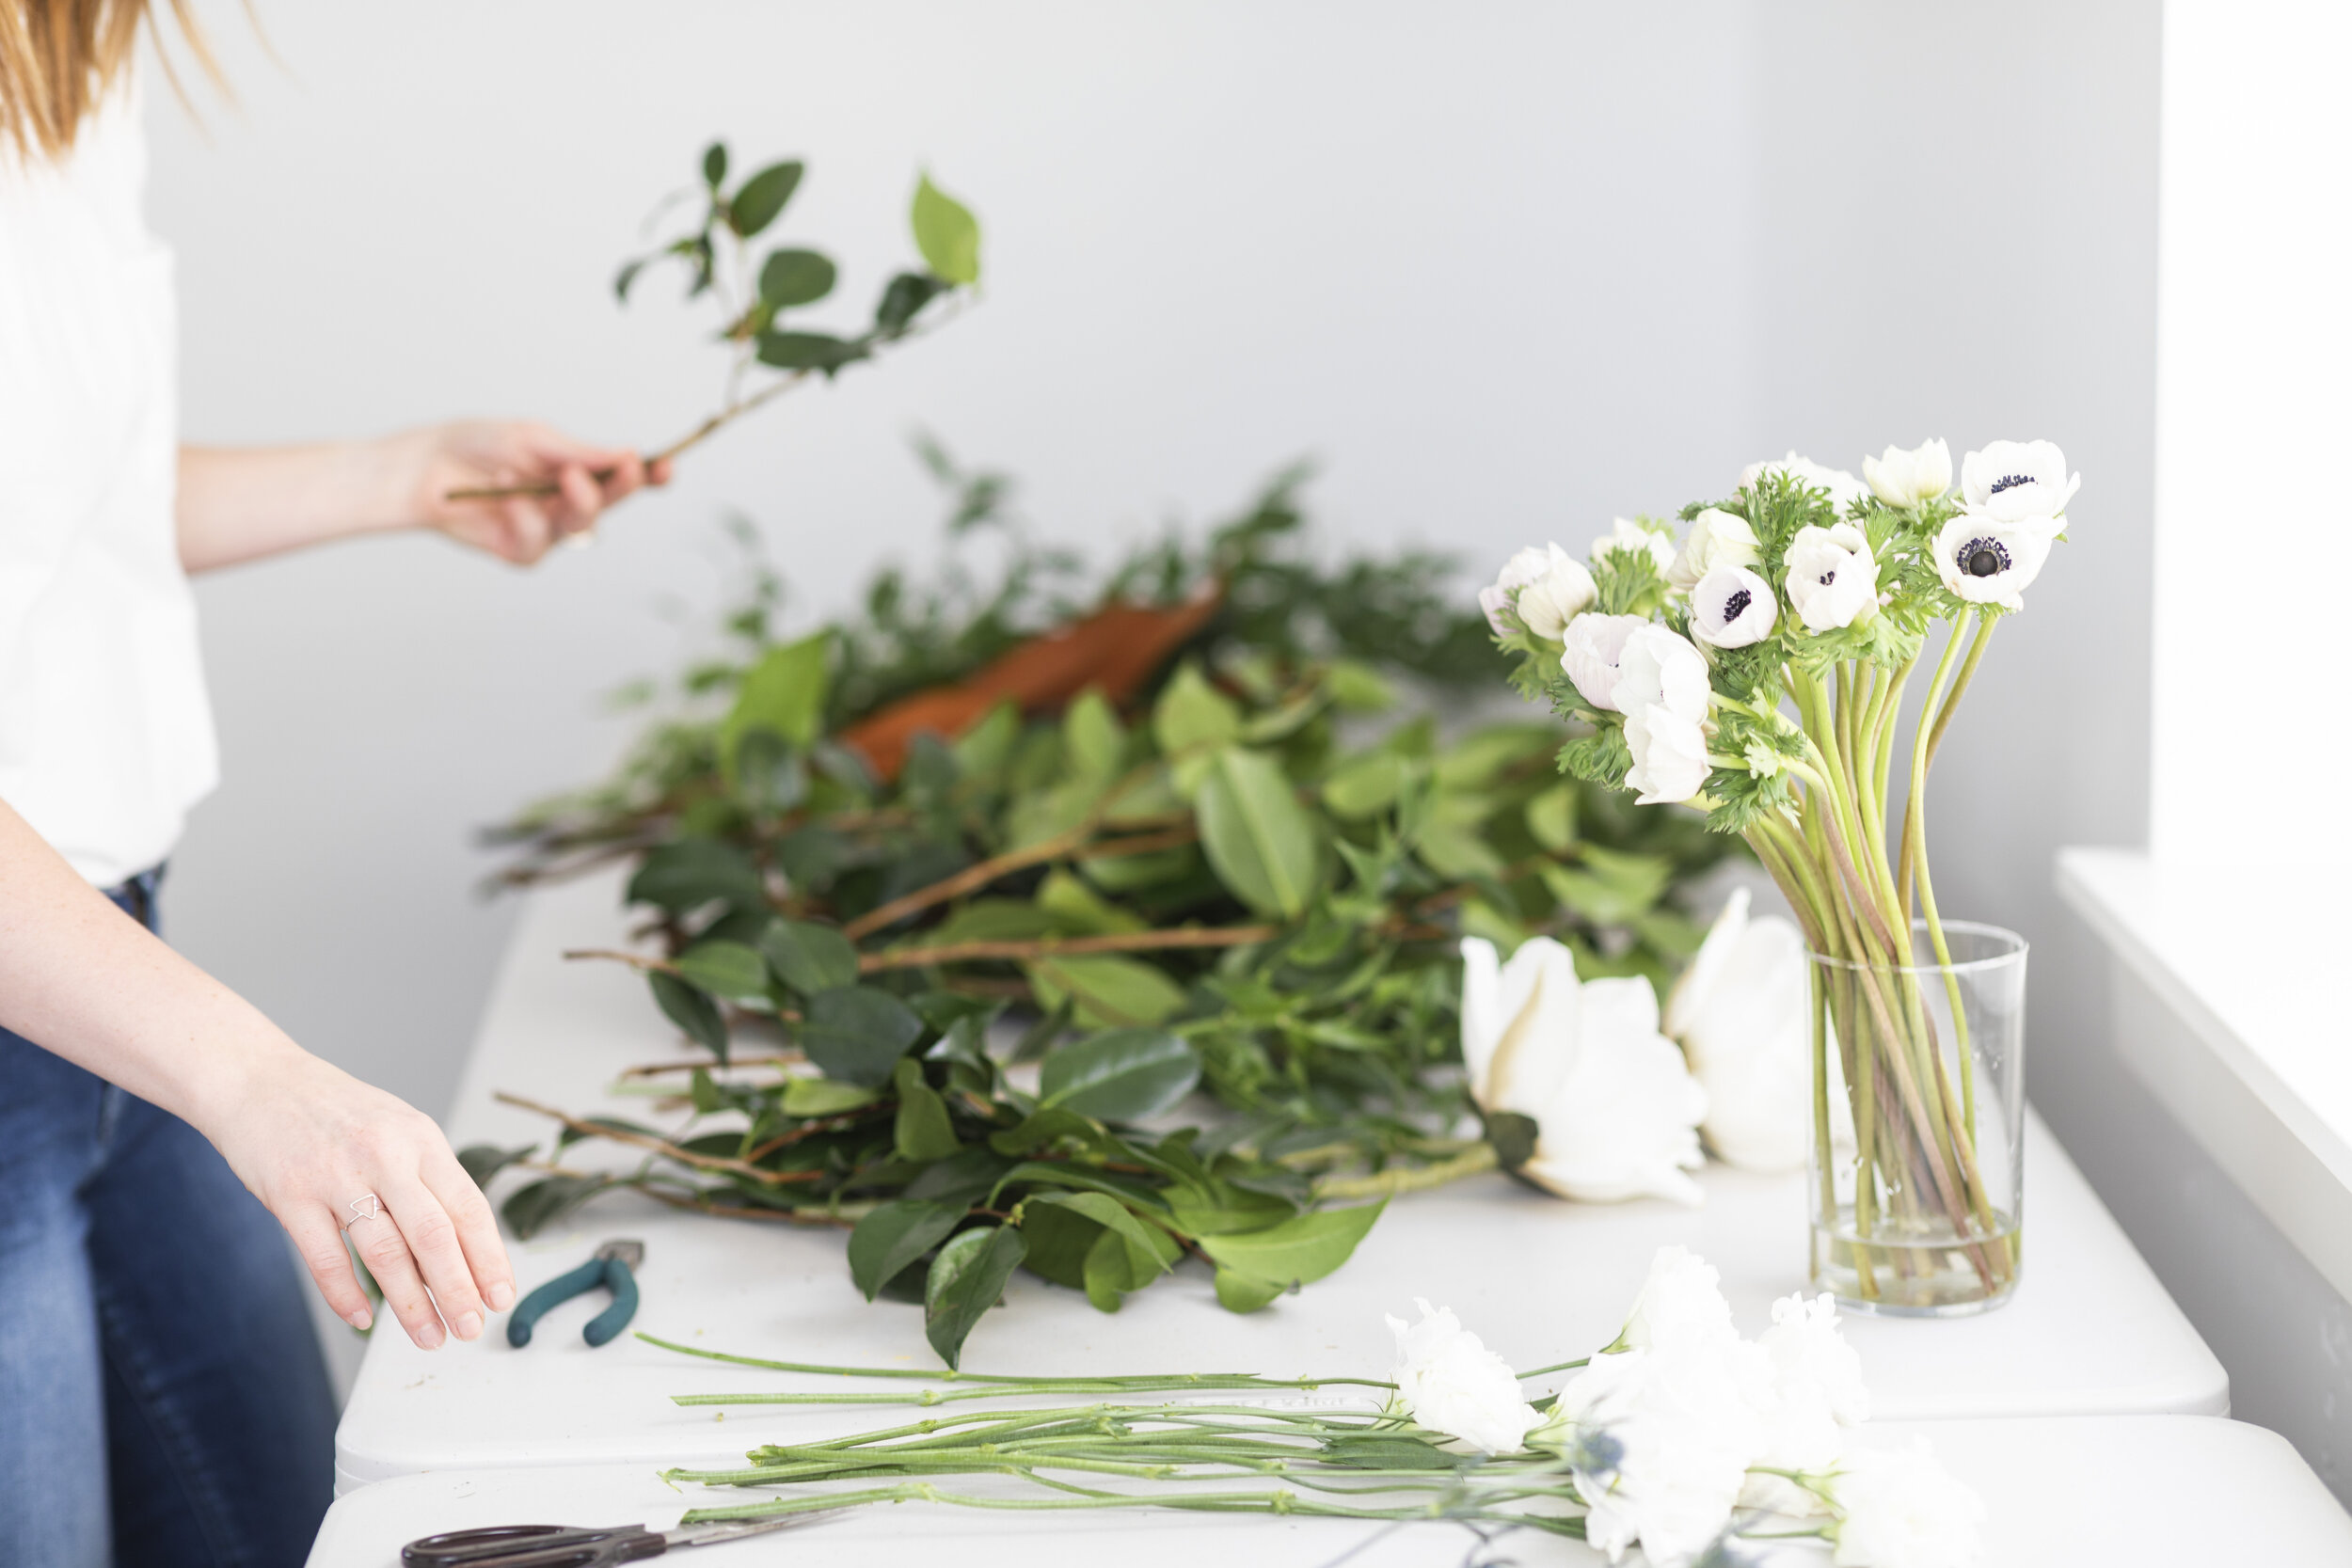 looking for a florist for your big day sarah at blushing rose floral is a perfect choice utah county florist she has a true passion for floral design blue white and orange floral arrangements beautiful greenery have a general idea of what your would like flower love inspiration #floristtips #tipsandtricks #vendorspotlight #blushingrosefloral #florist #utahcounty #wedding #inspiration #help #flowers